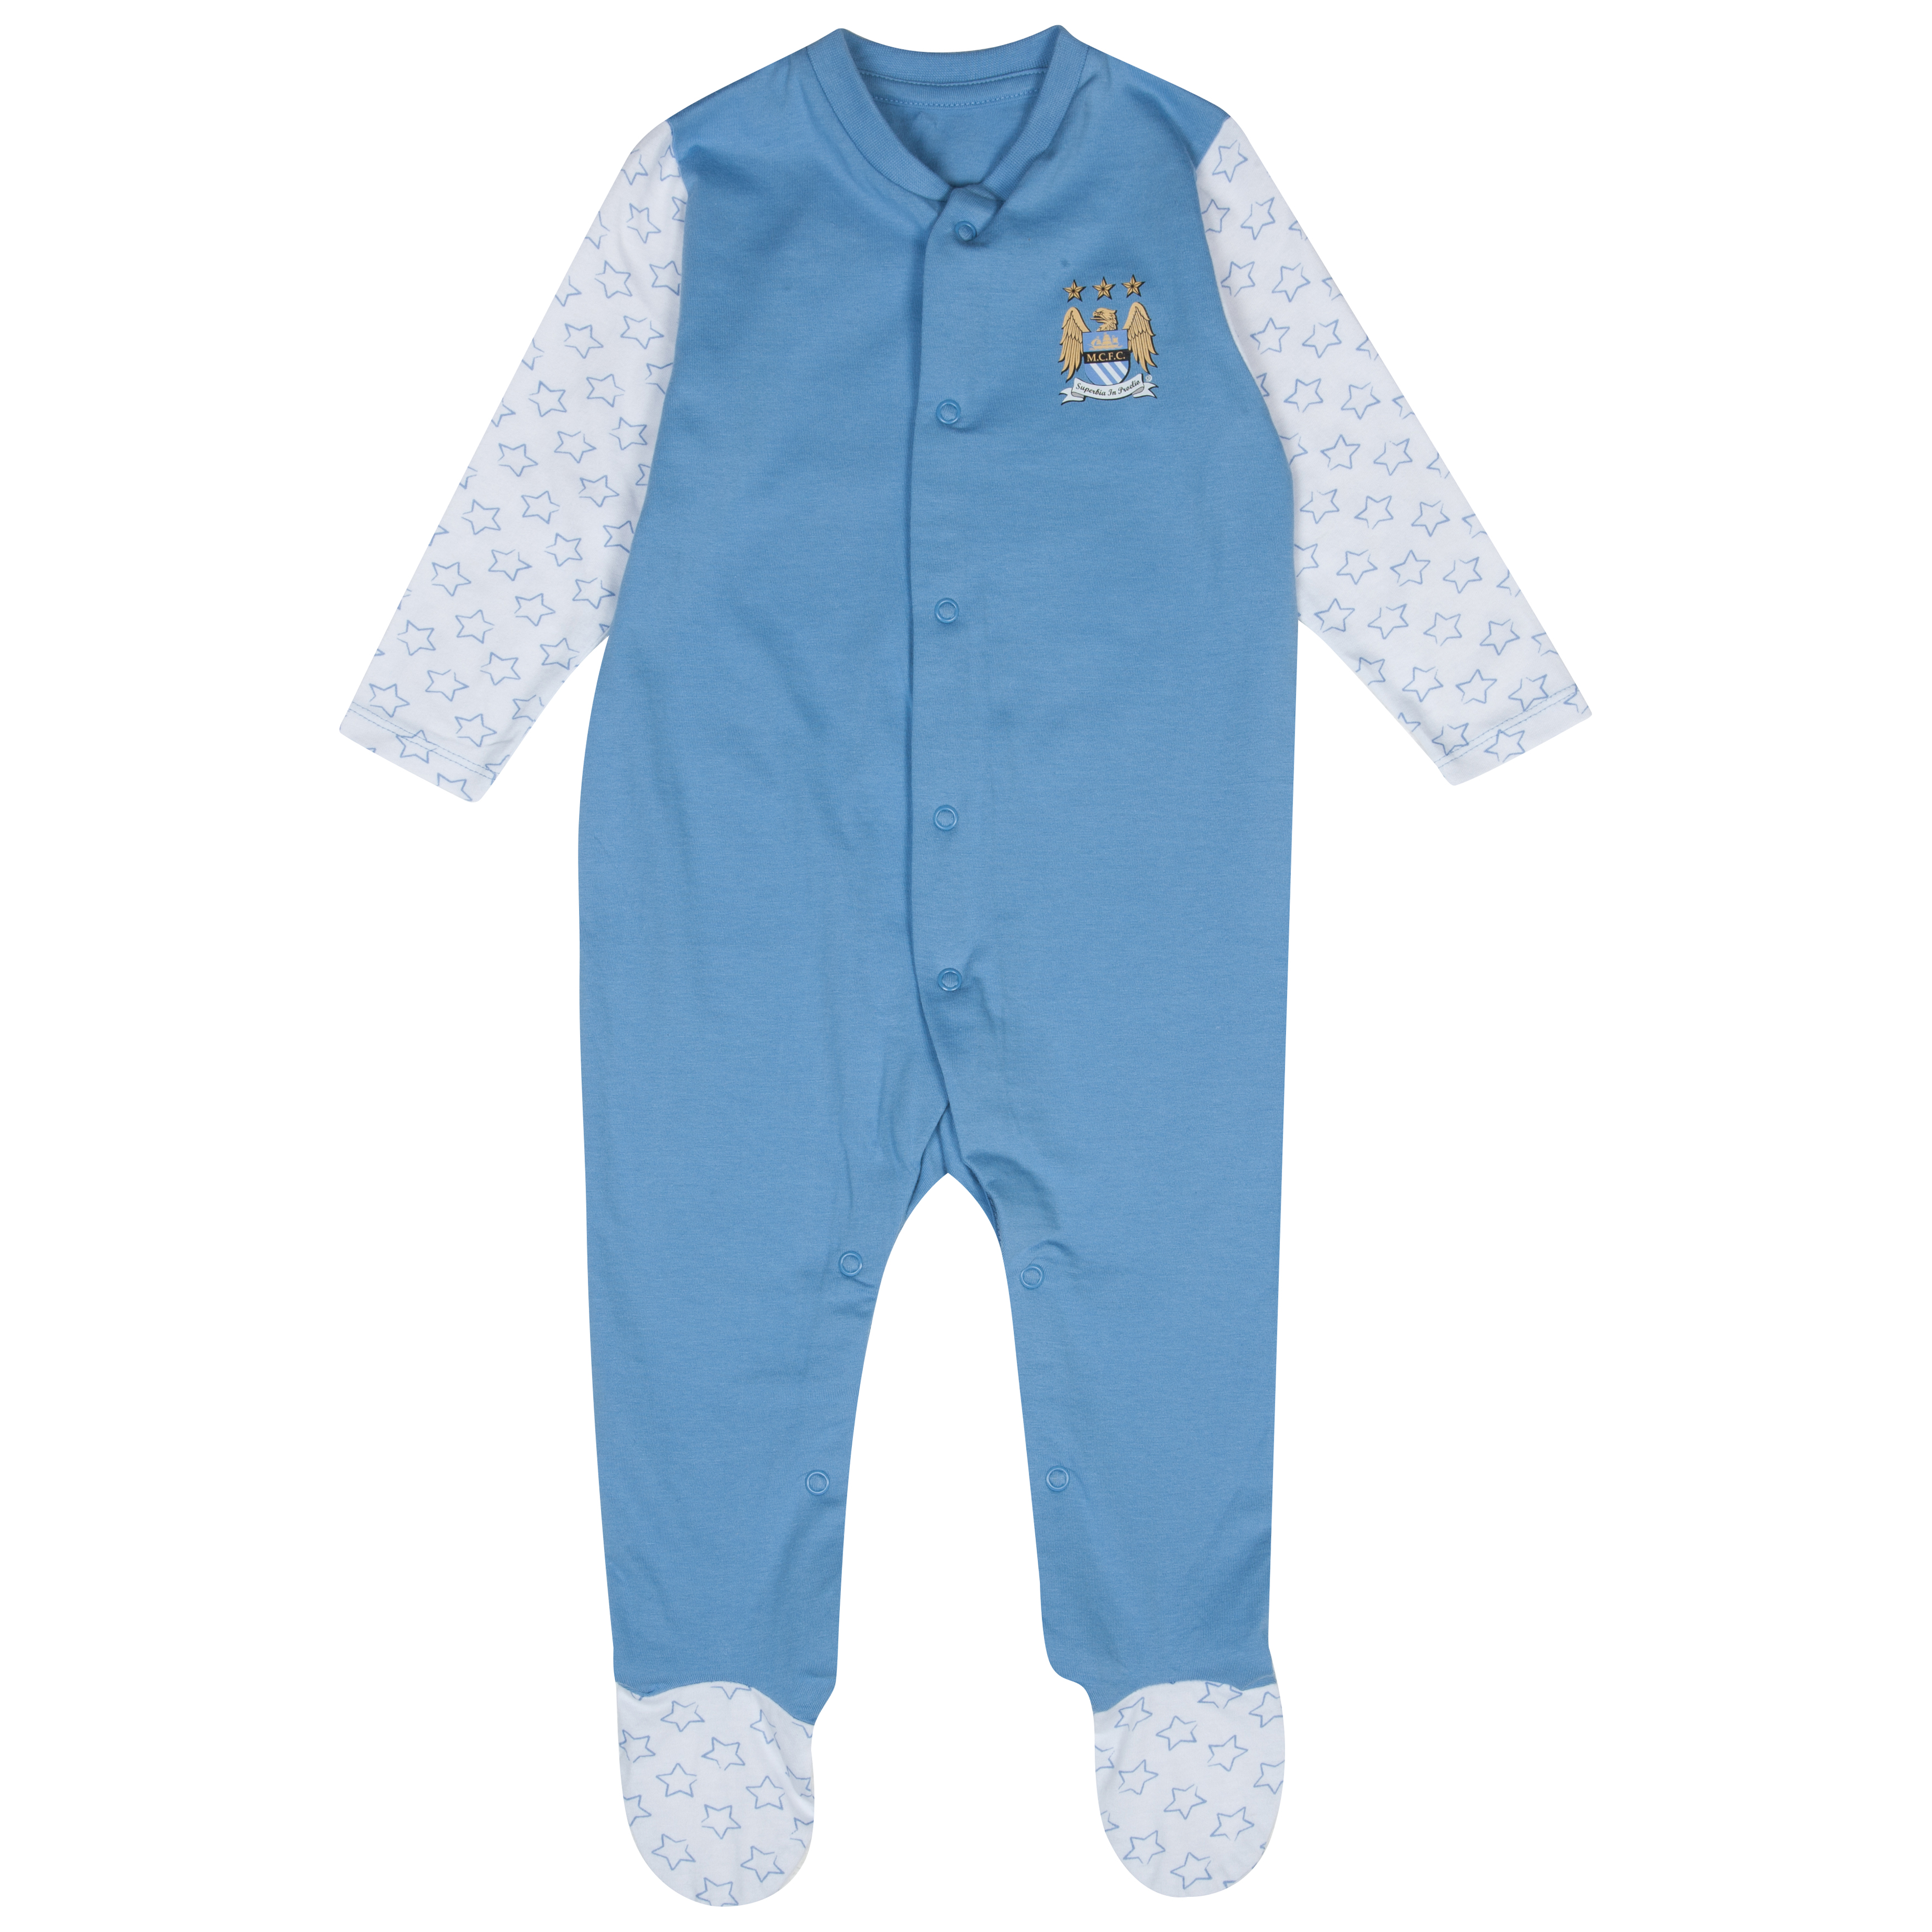 Manchester City Star Sleepsuit - Sky/White - Baby